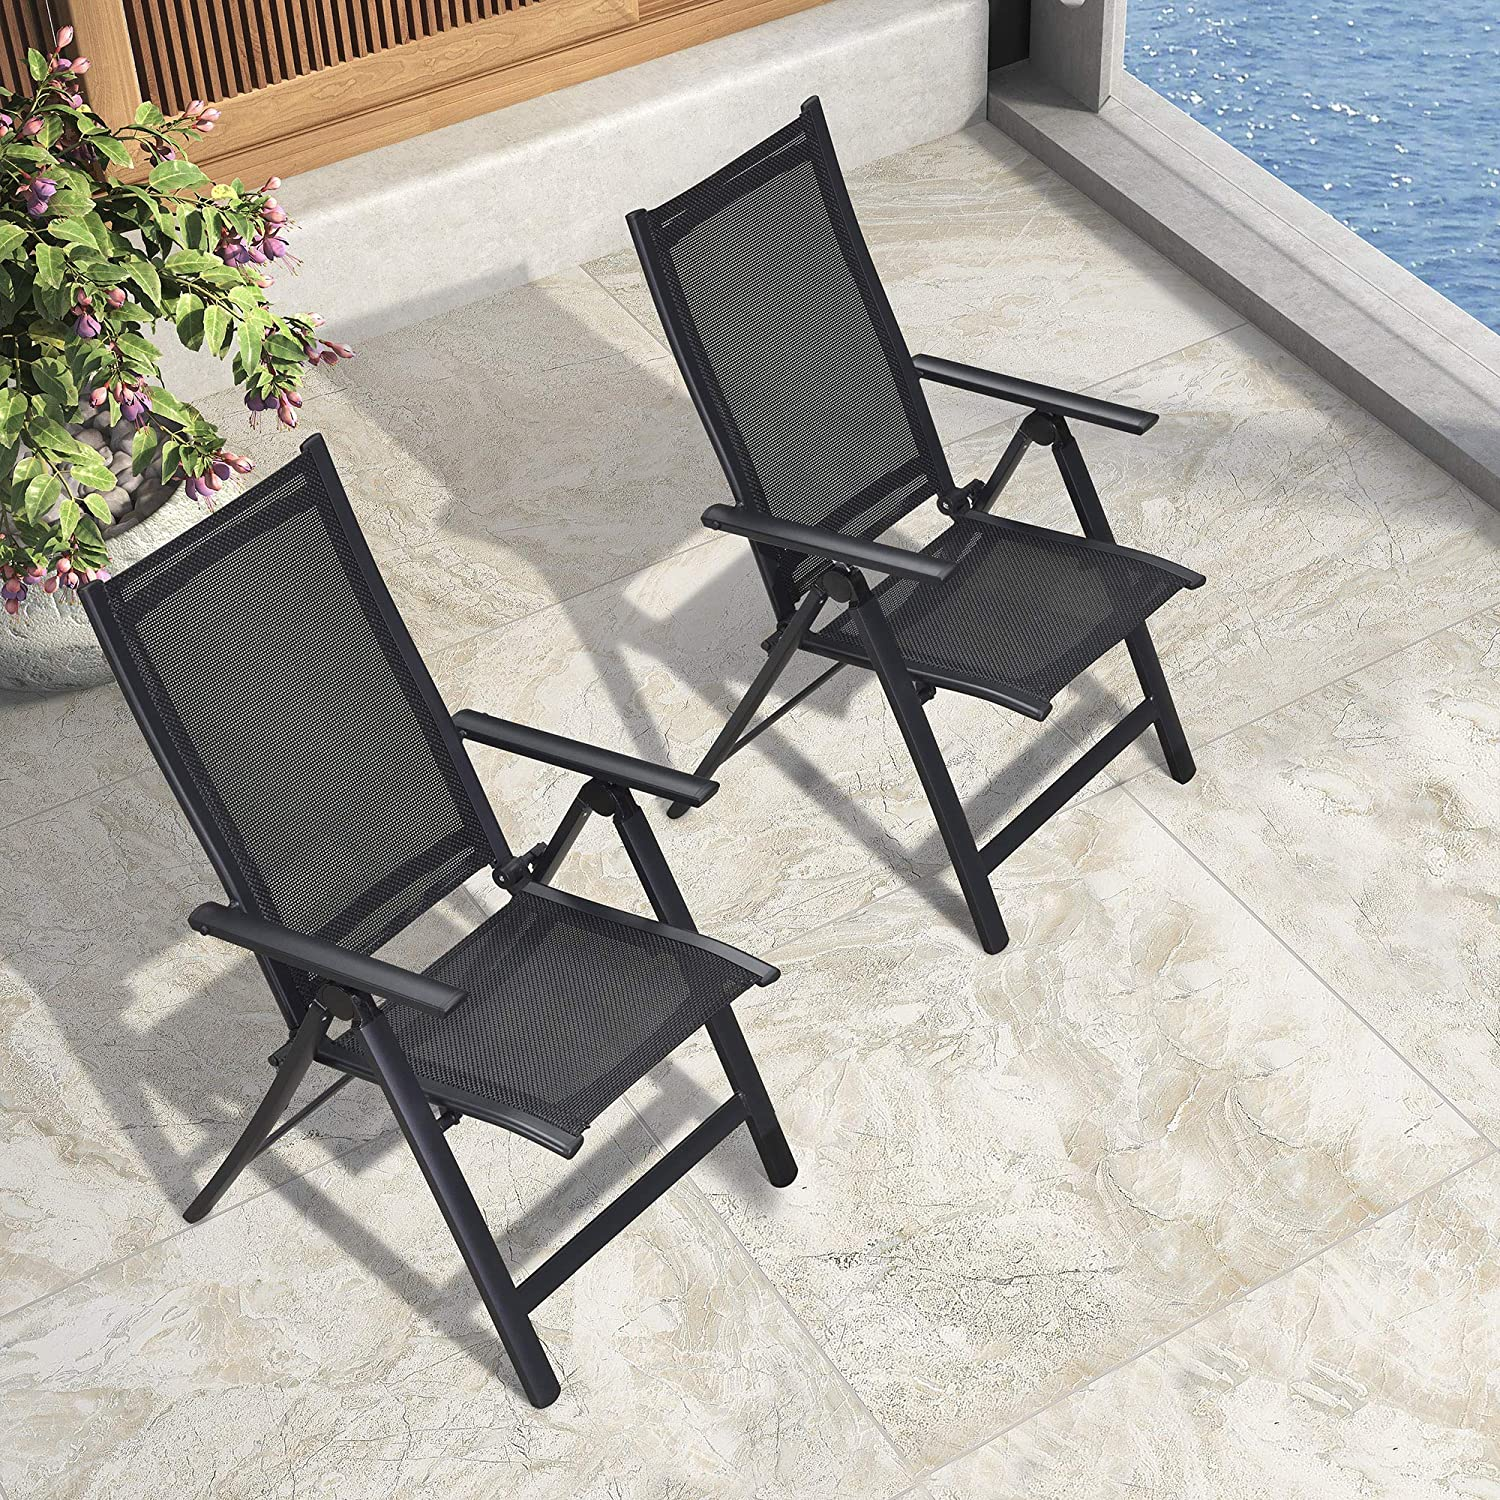 PURPLE LEAF Outdoor Patio Folding Dining Chairs Set of 2, Outdoor Reclining Chairs Camping Chair with Textilene Fabric Seating, 5 Levels Adjustable High Backrest Portable Chairs, Black